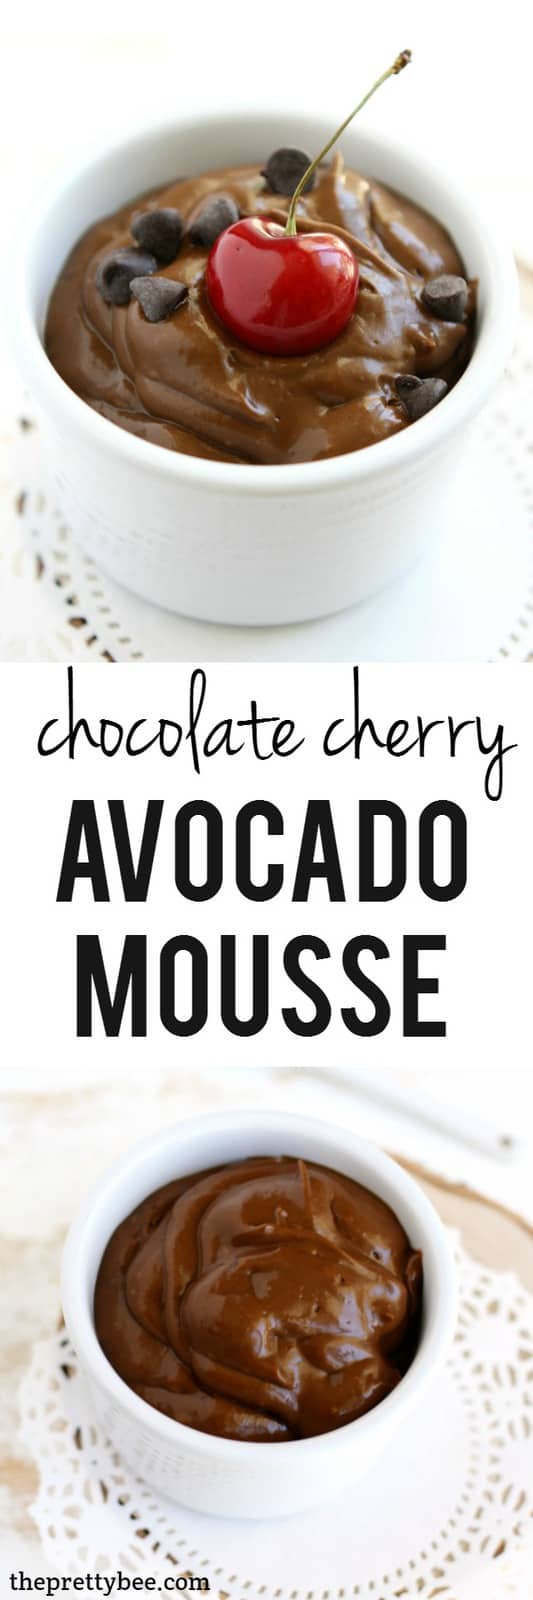 This chocolate cherry avocado pudding is so creamy, delicious, and healthy!